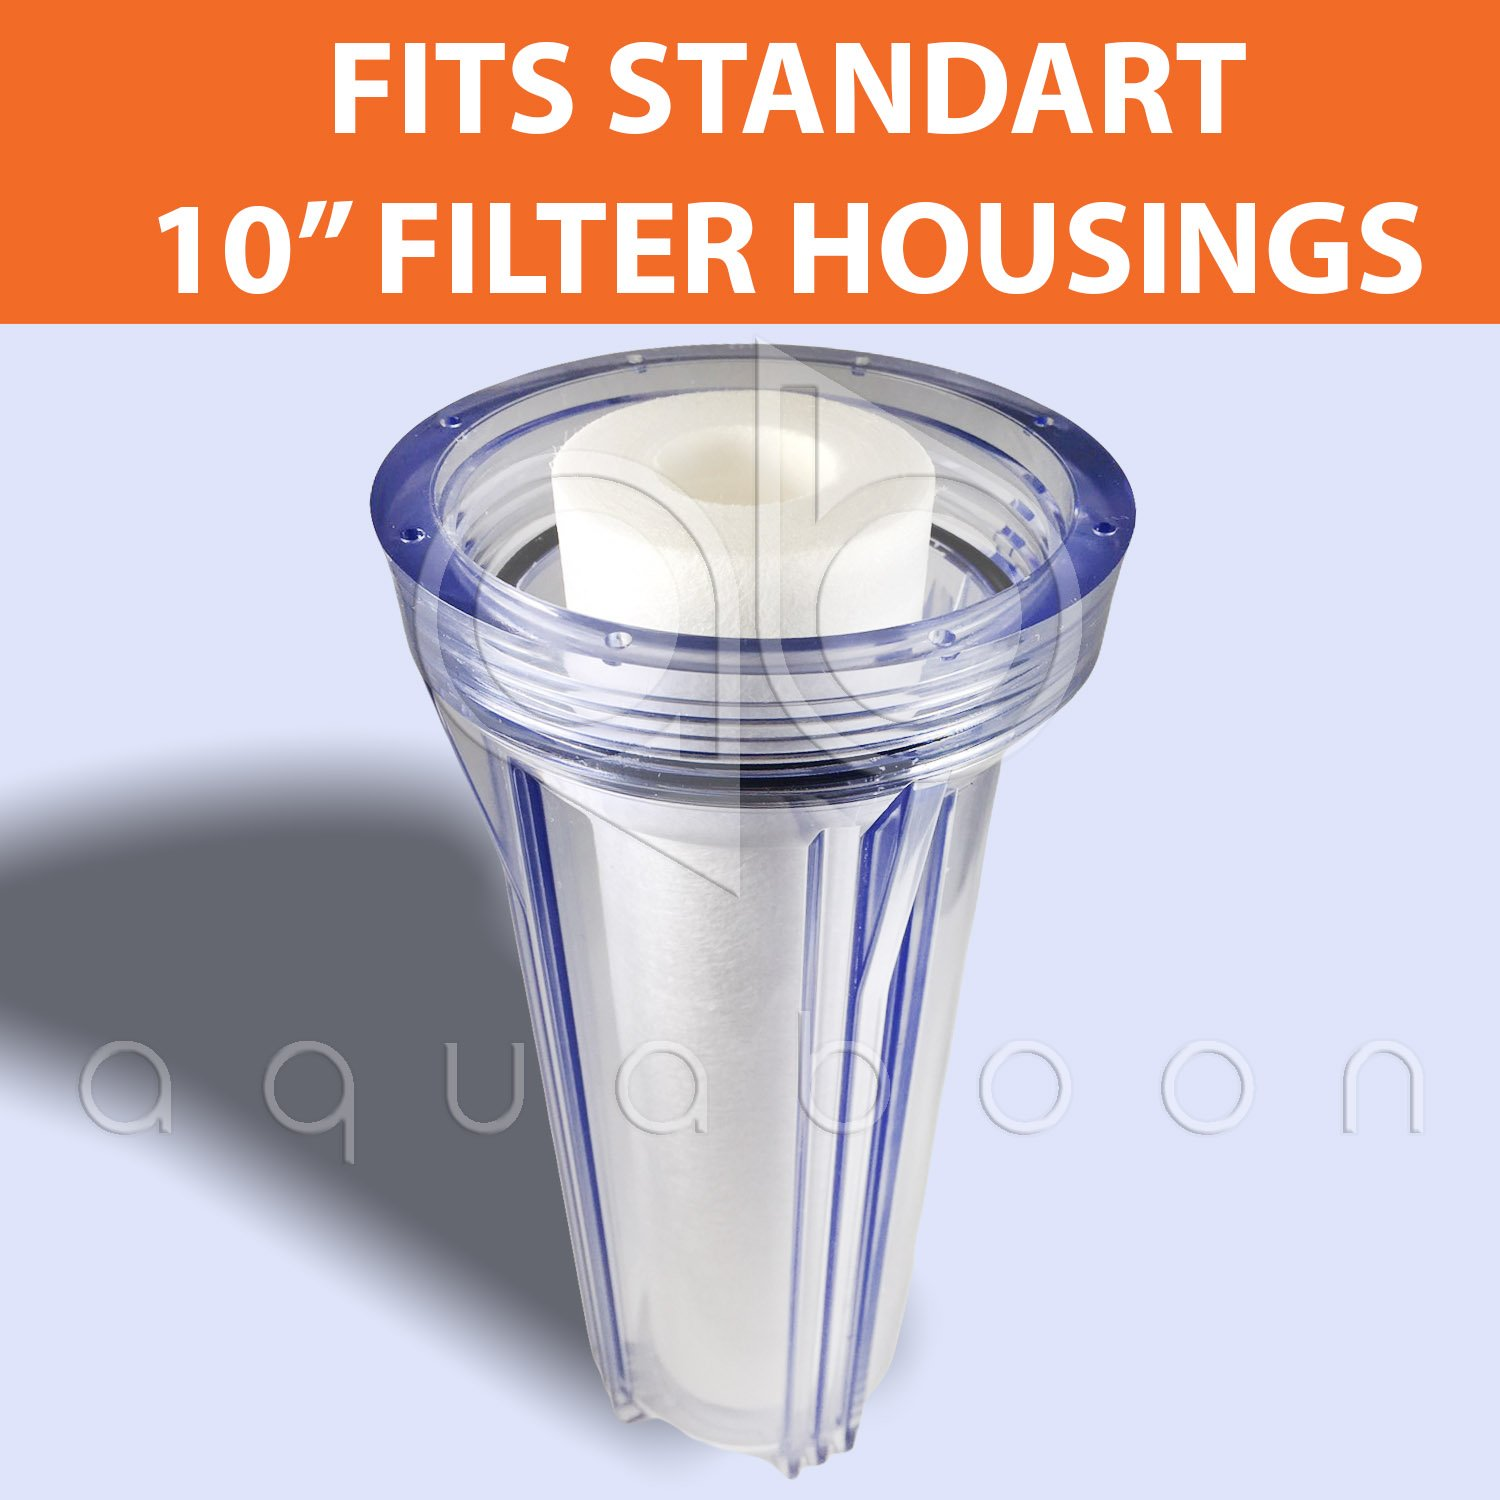 Replacement Filter Set with Sediment /& Carbon Filters for Standard 10 Housings AquaBoon